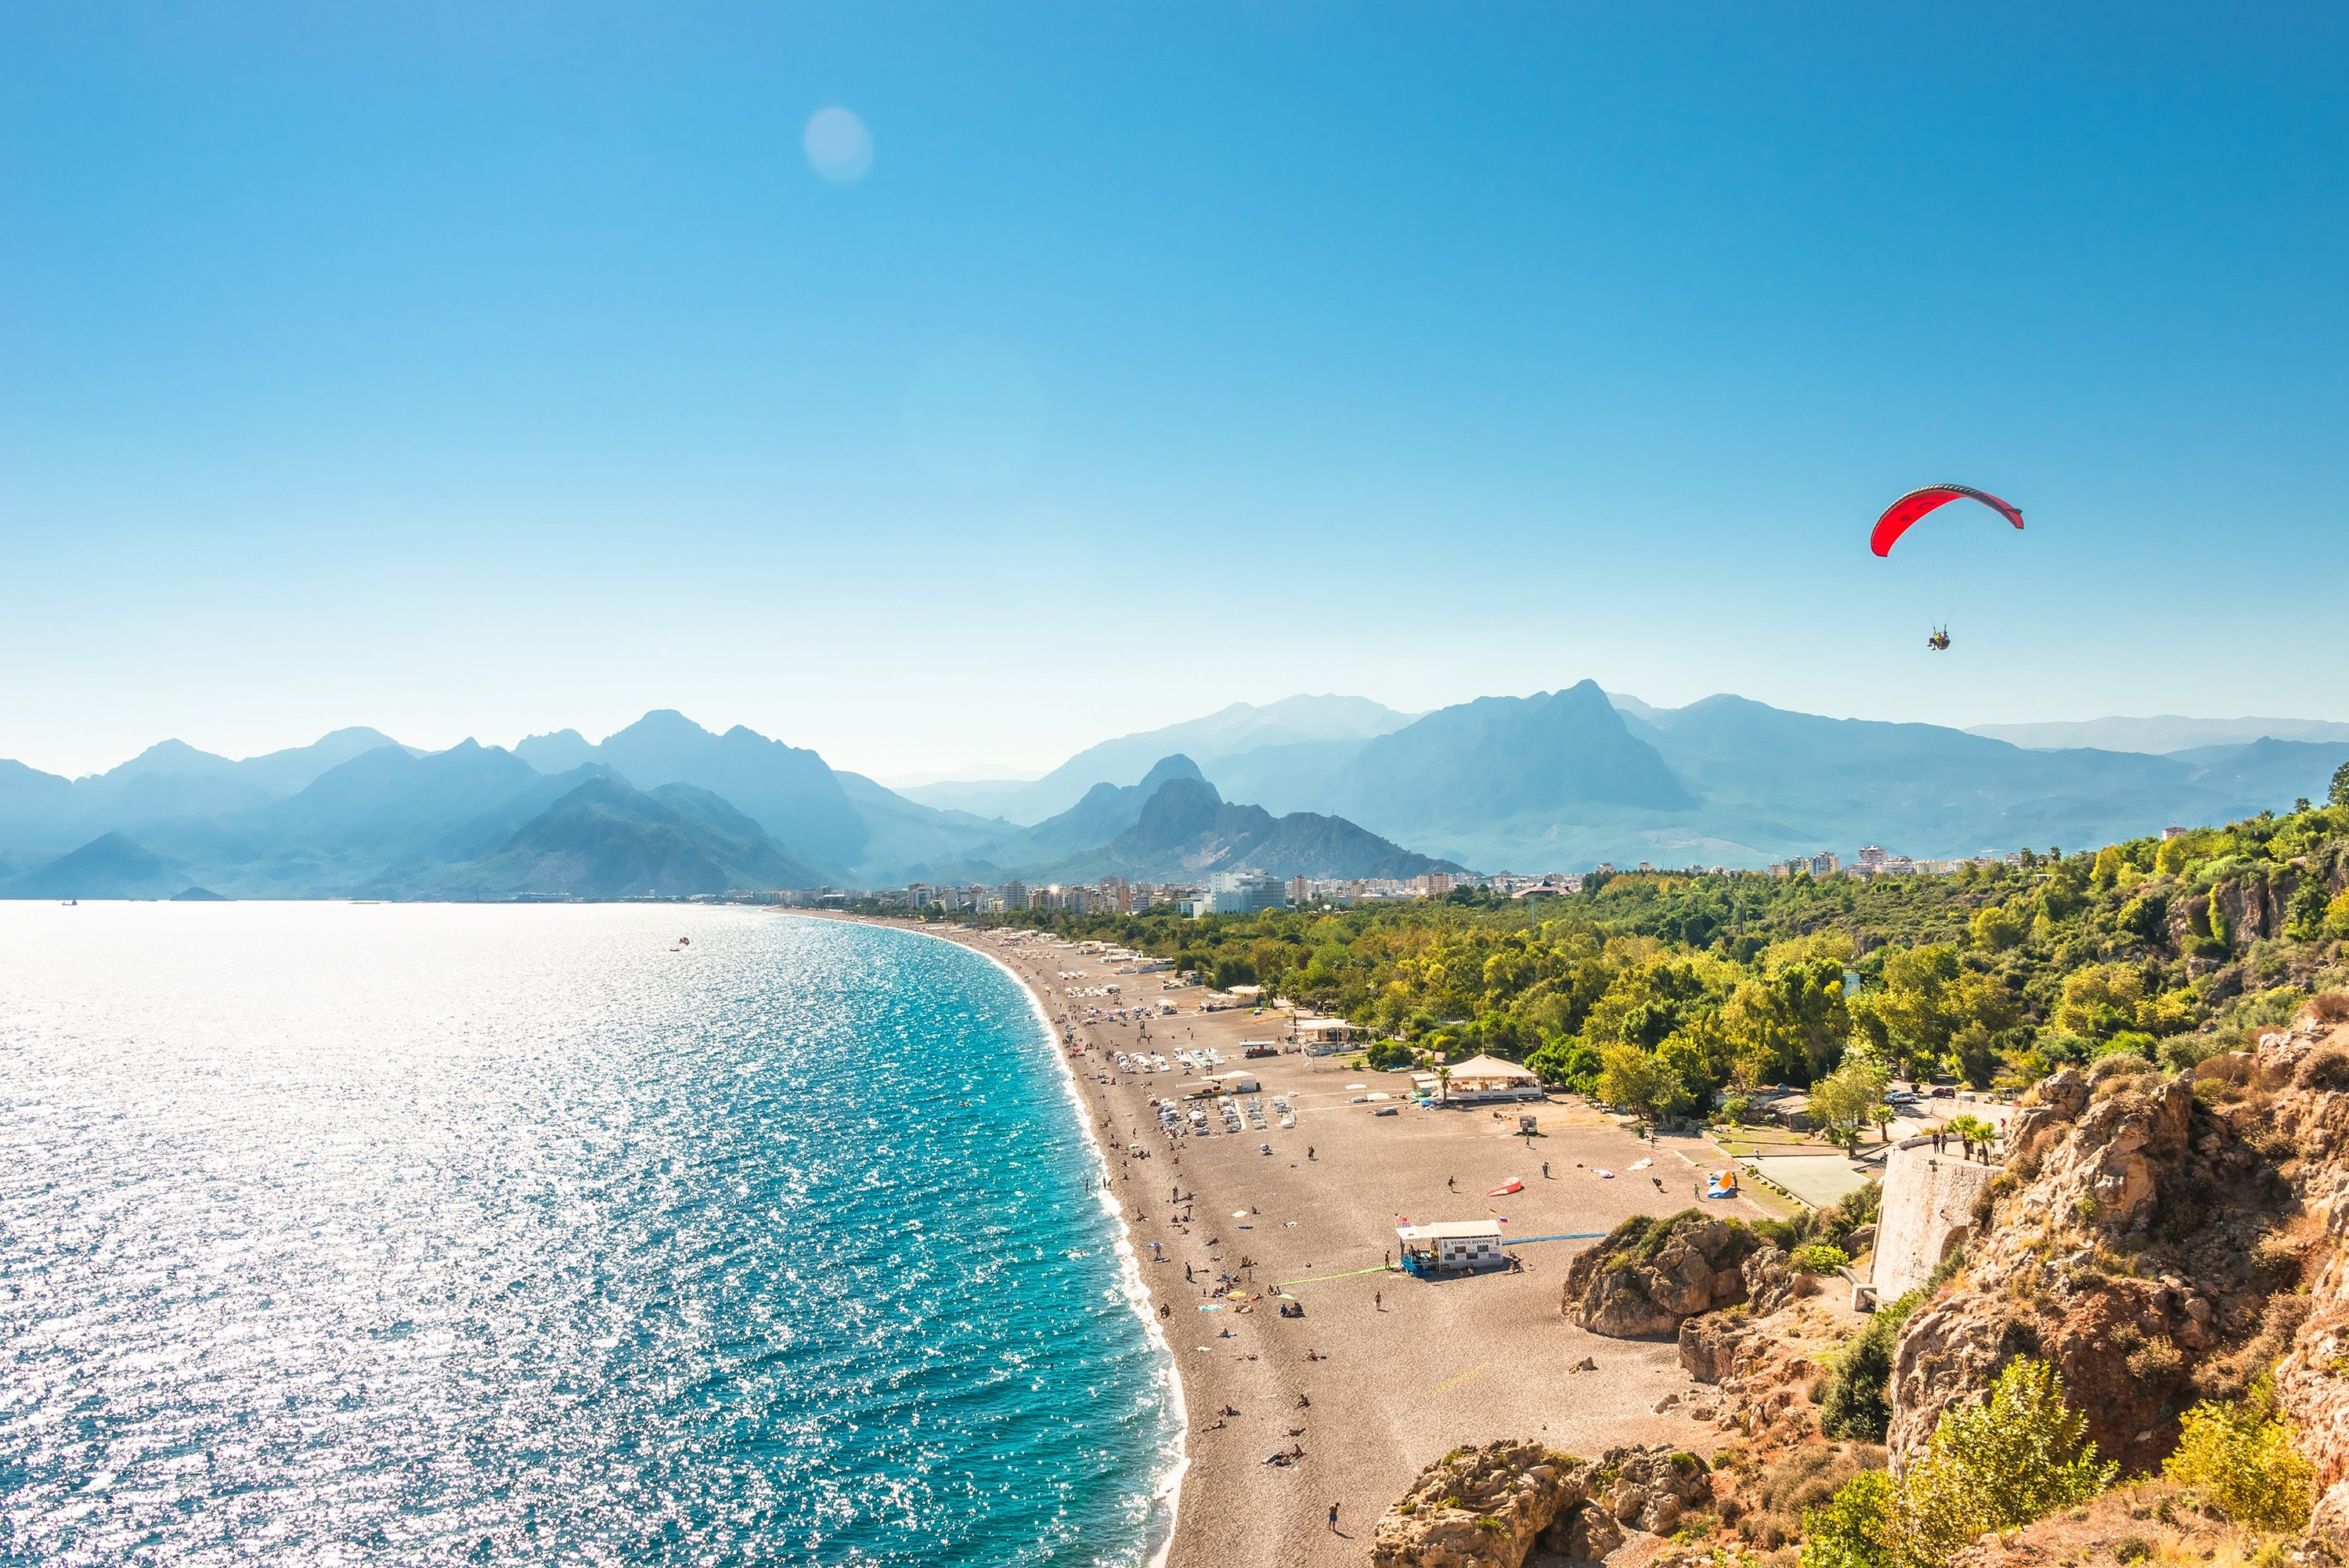 Antalya has been rising in popularity among expats, especially Russians. (Shutterstock Photo)